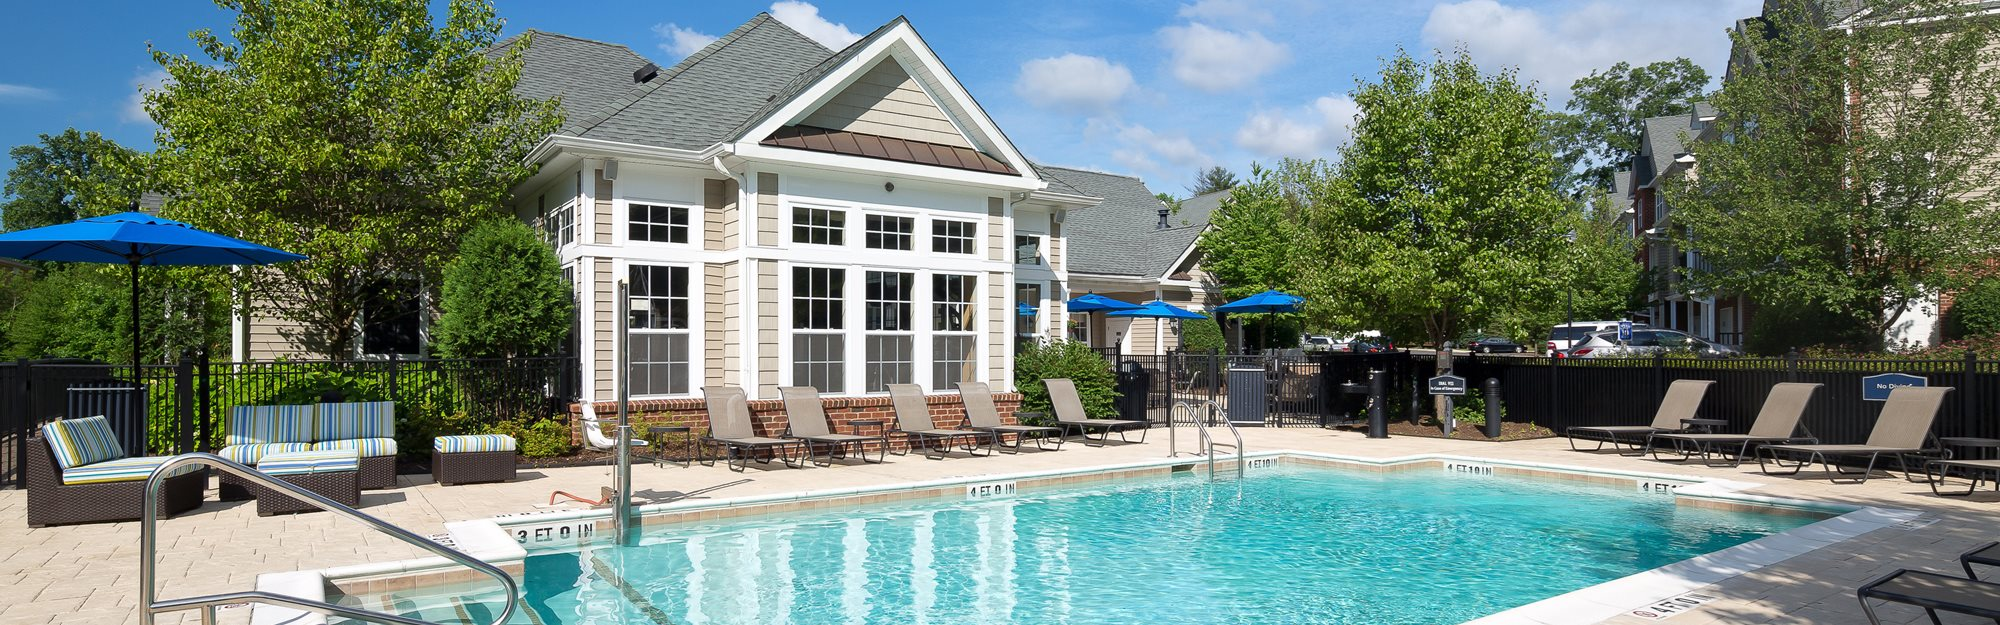 Pool at Huntington Townhomes in Shelton, CT